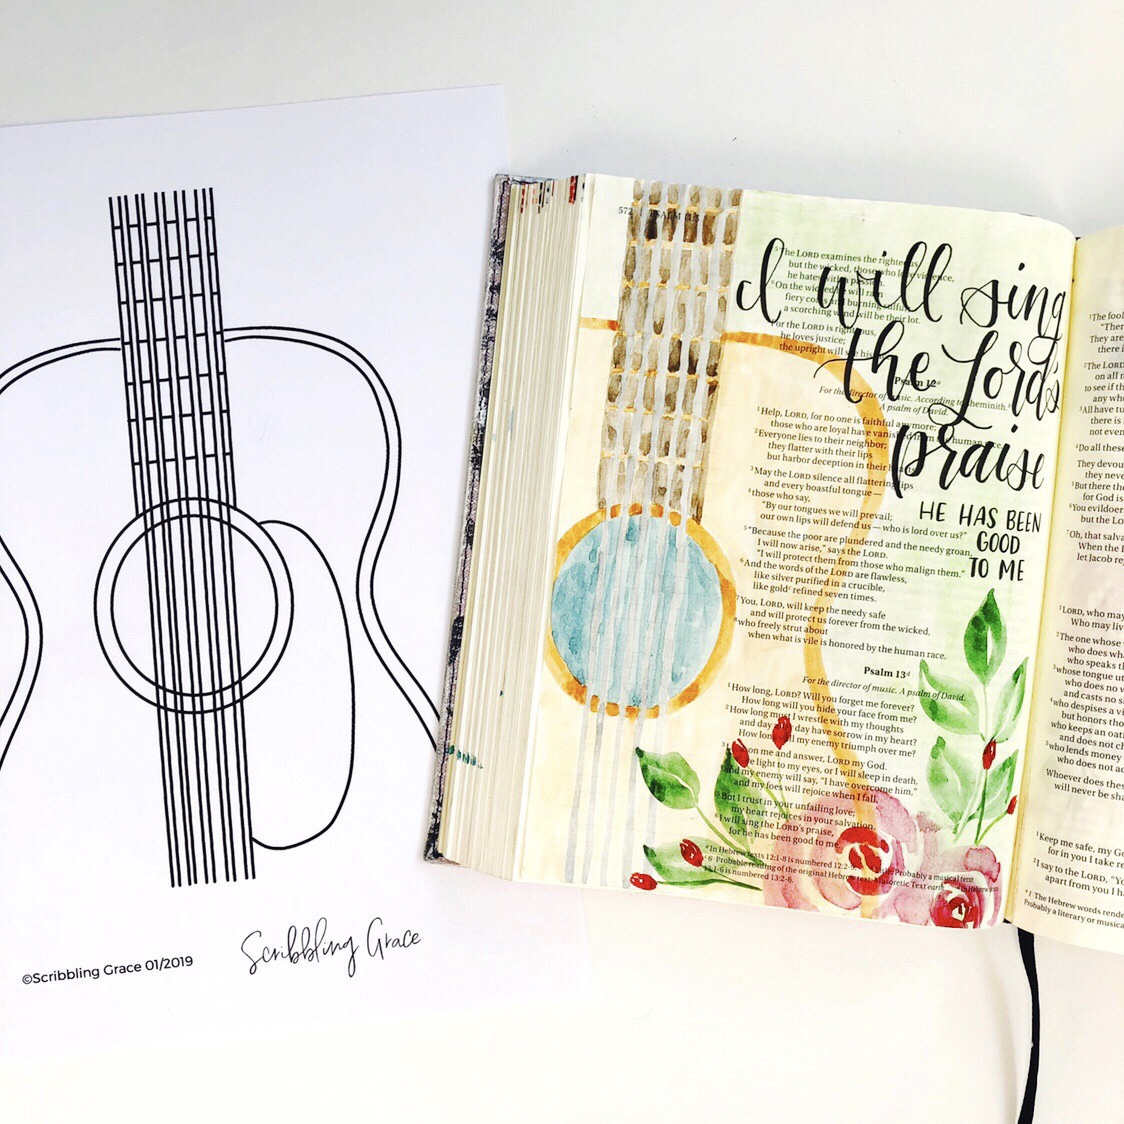 image about Free Printable Bible Journaling Pages called Tutorials Archives - Website page 2 of 5 - Scribbling Grace